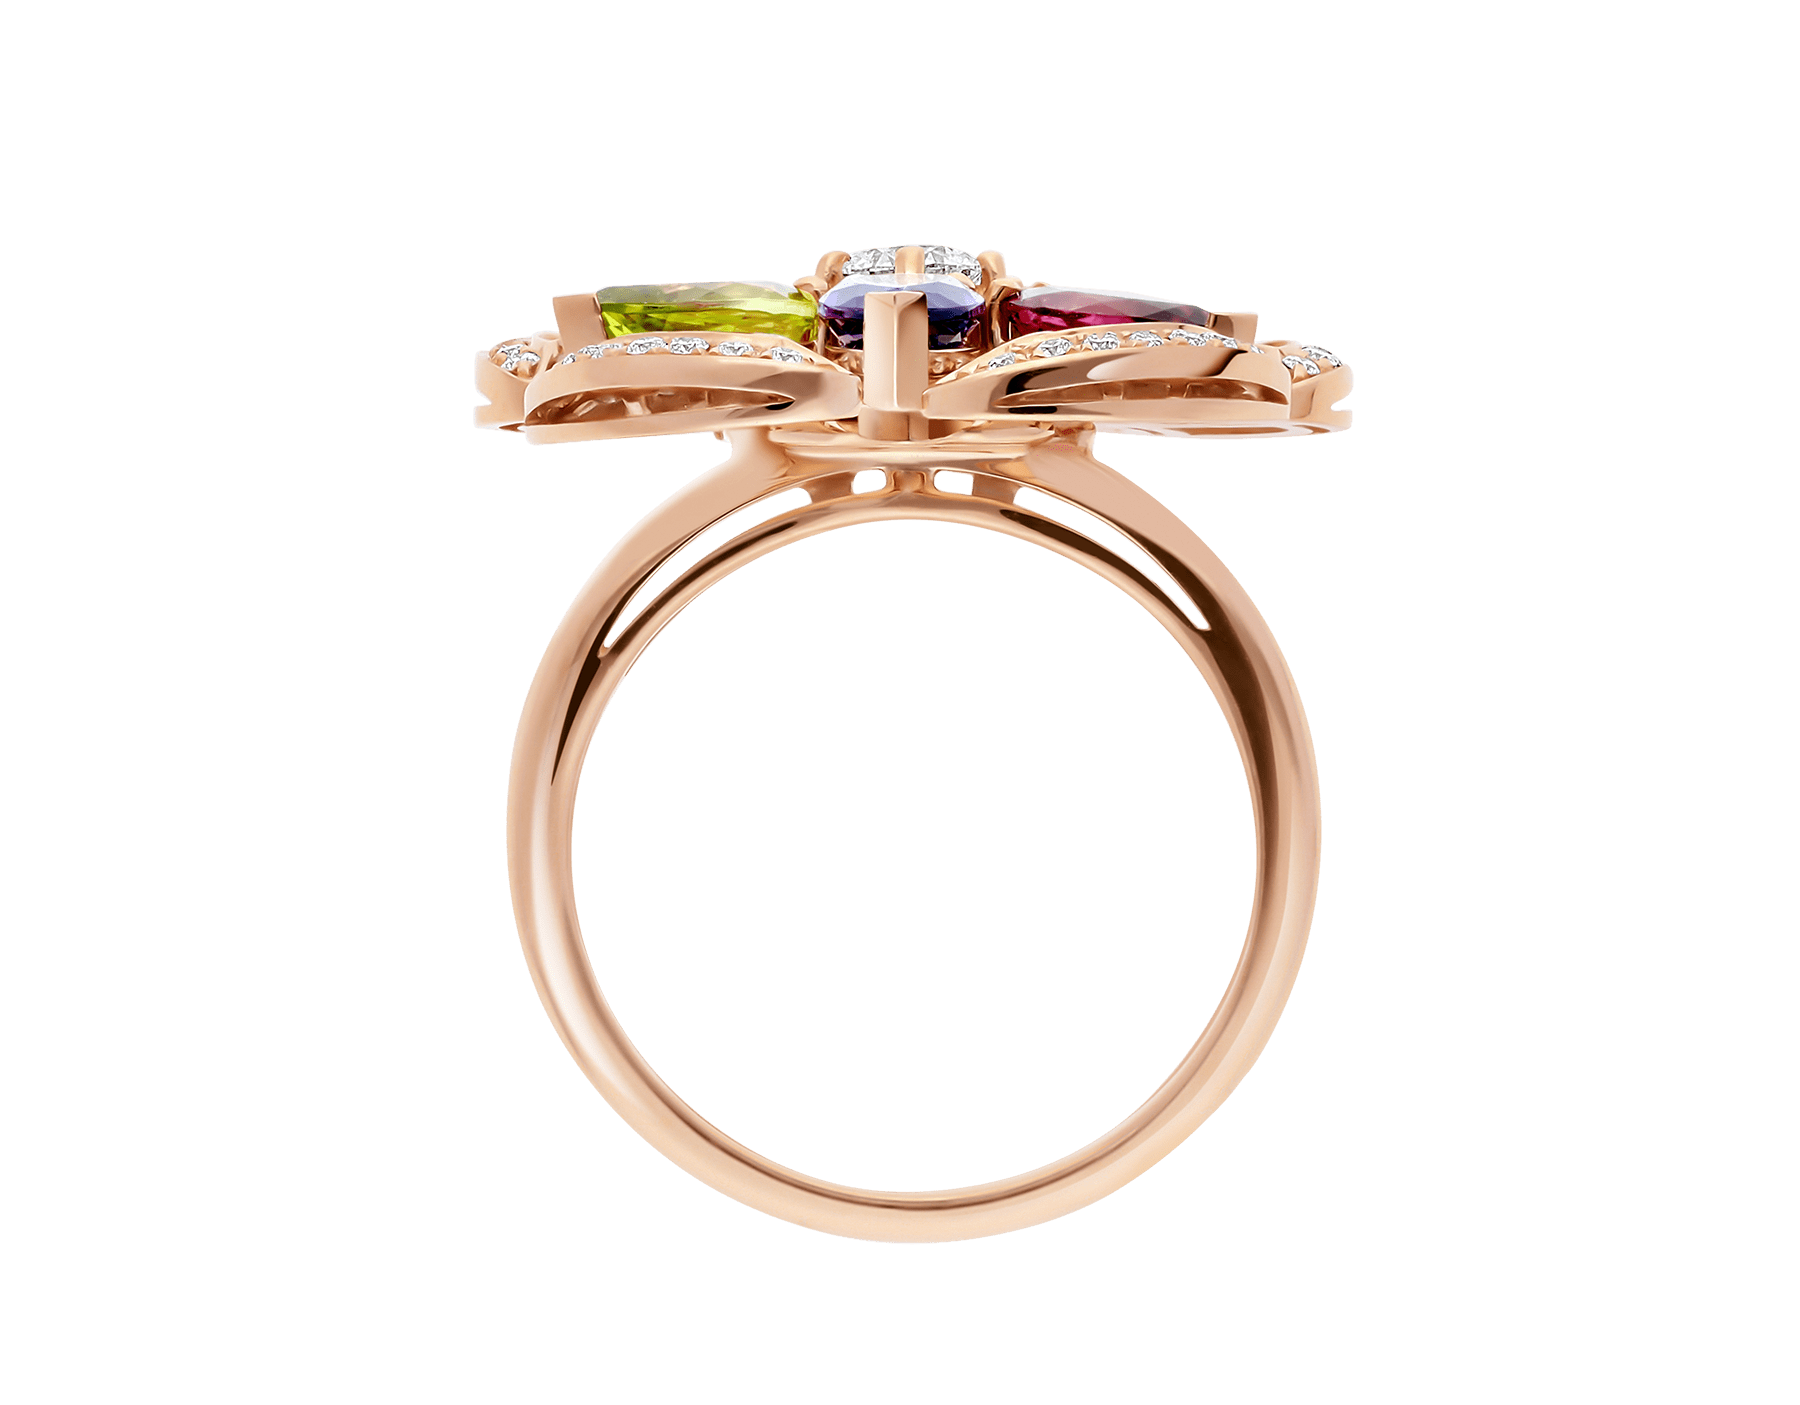 Anillo DIVAS' DREAM en oro rosa de 18 qt con gemas de color, un diamante talla brillante y pavé de diamantes. AN858421 image 2